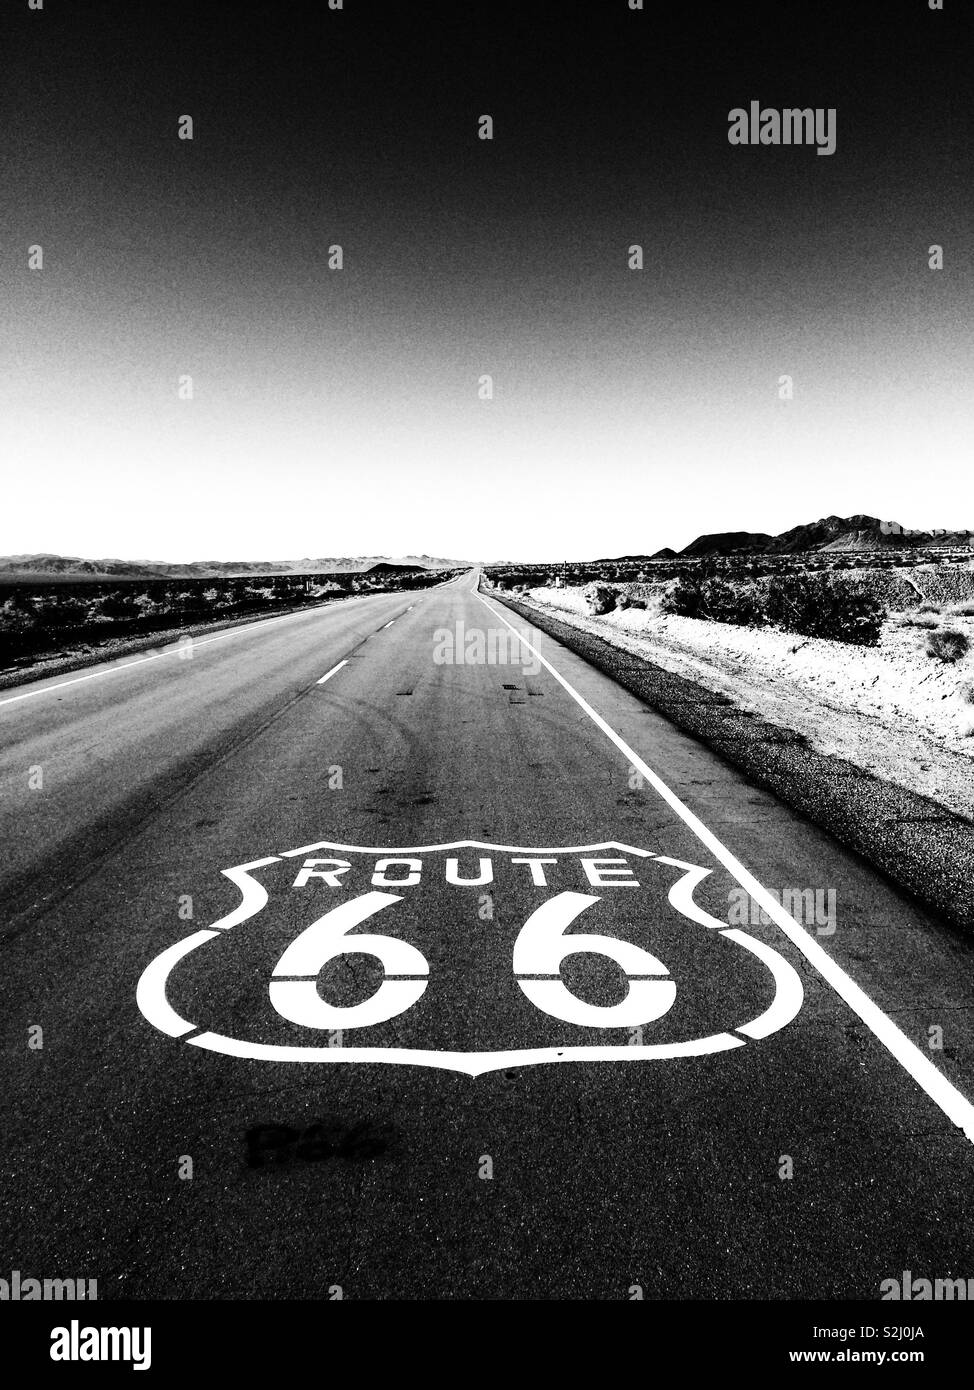 Road 66 sign in the Mojave desert. Black and white edit. - Stock Image